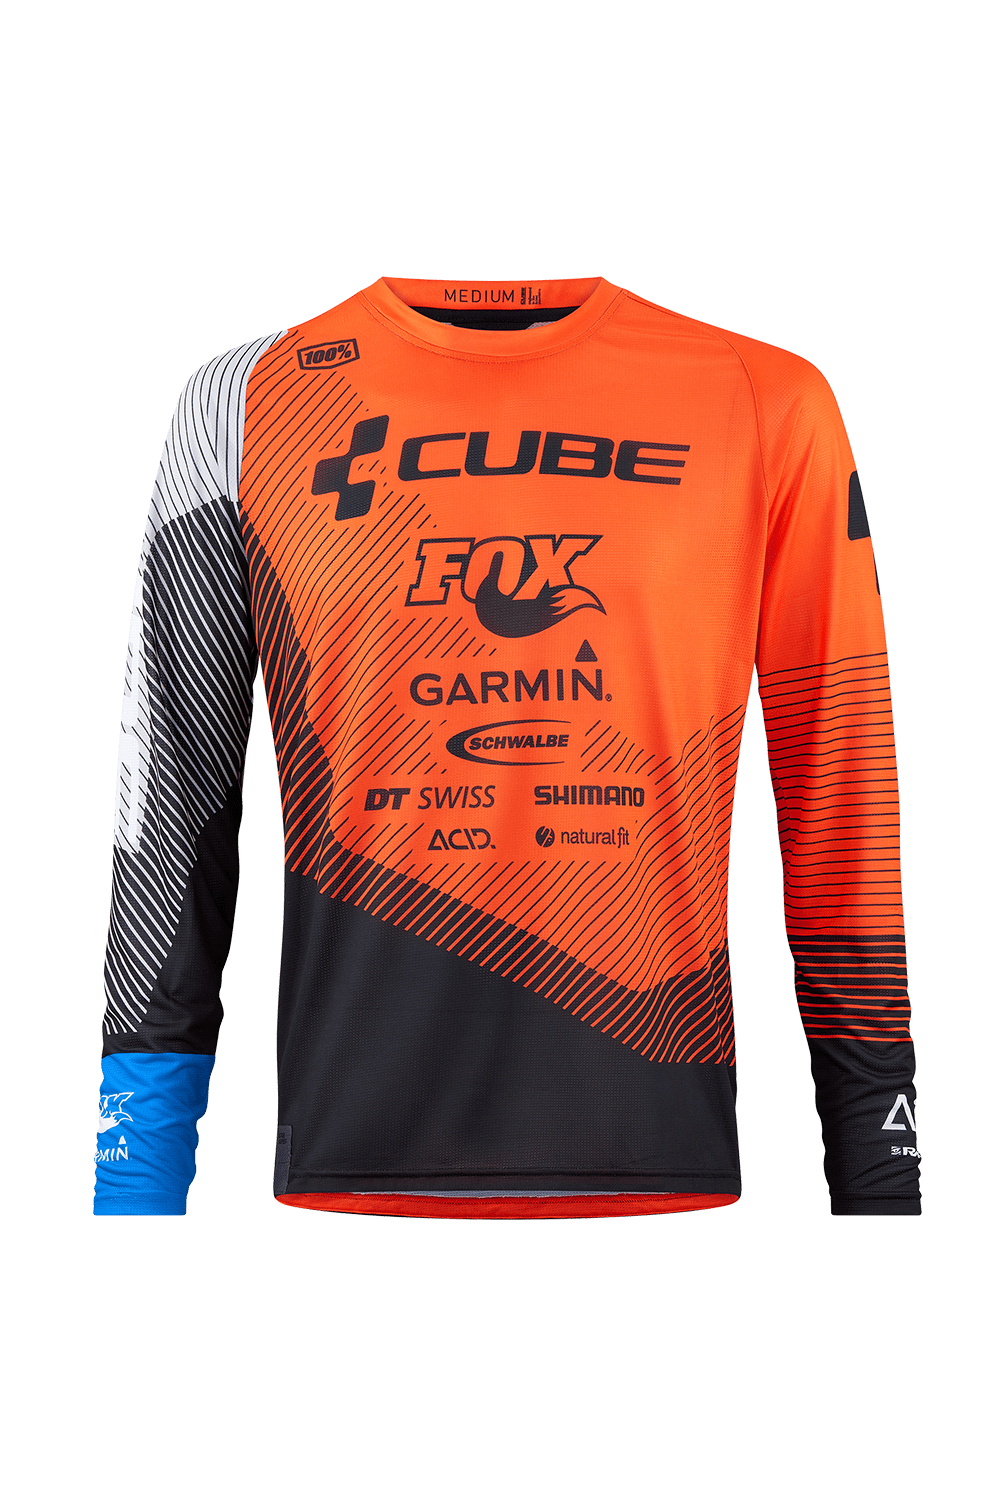 CUBE EDGE JERSEY ML X ACTIONTEAM